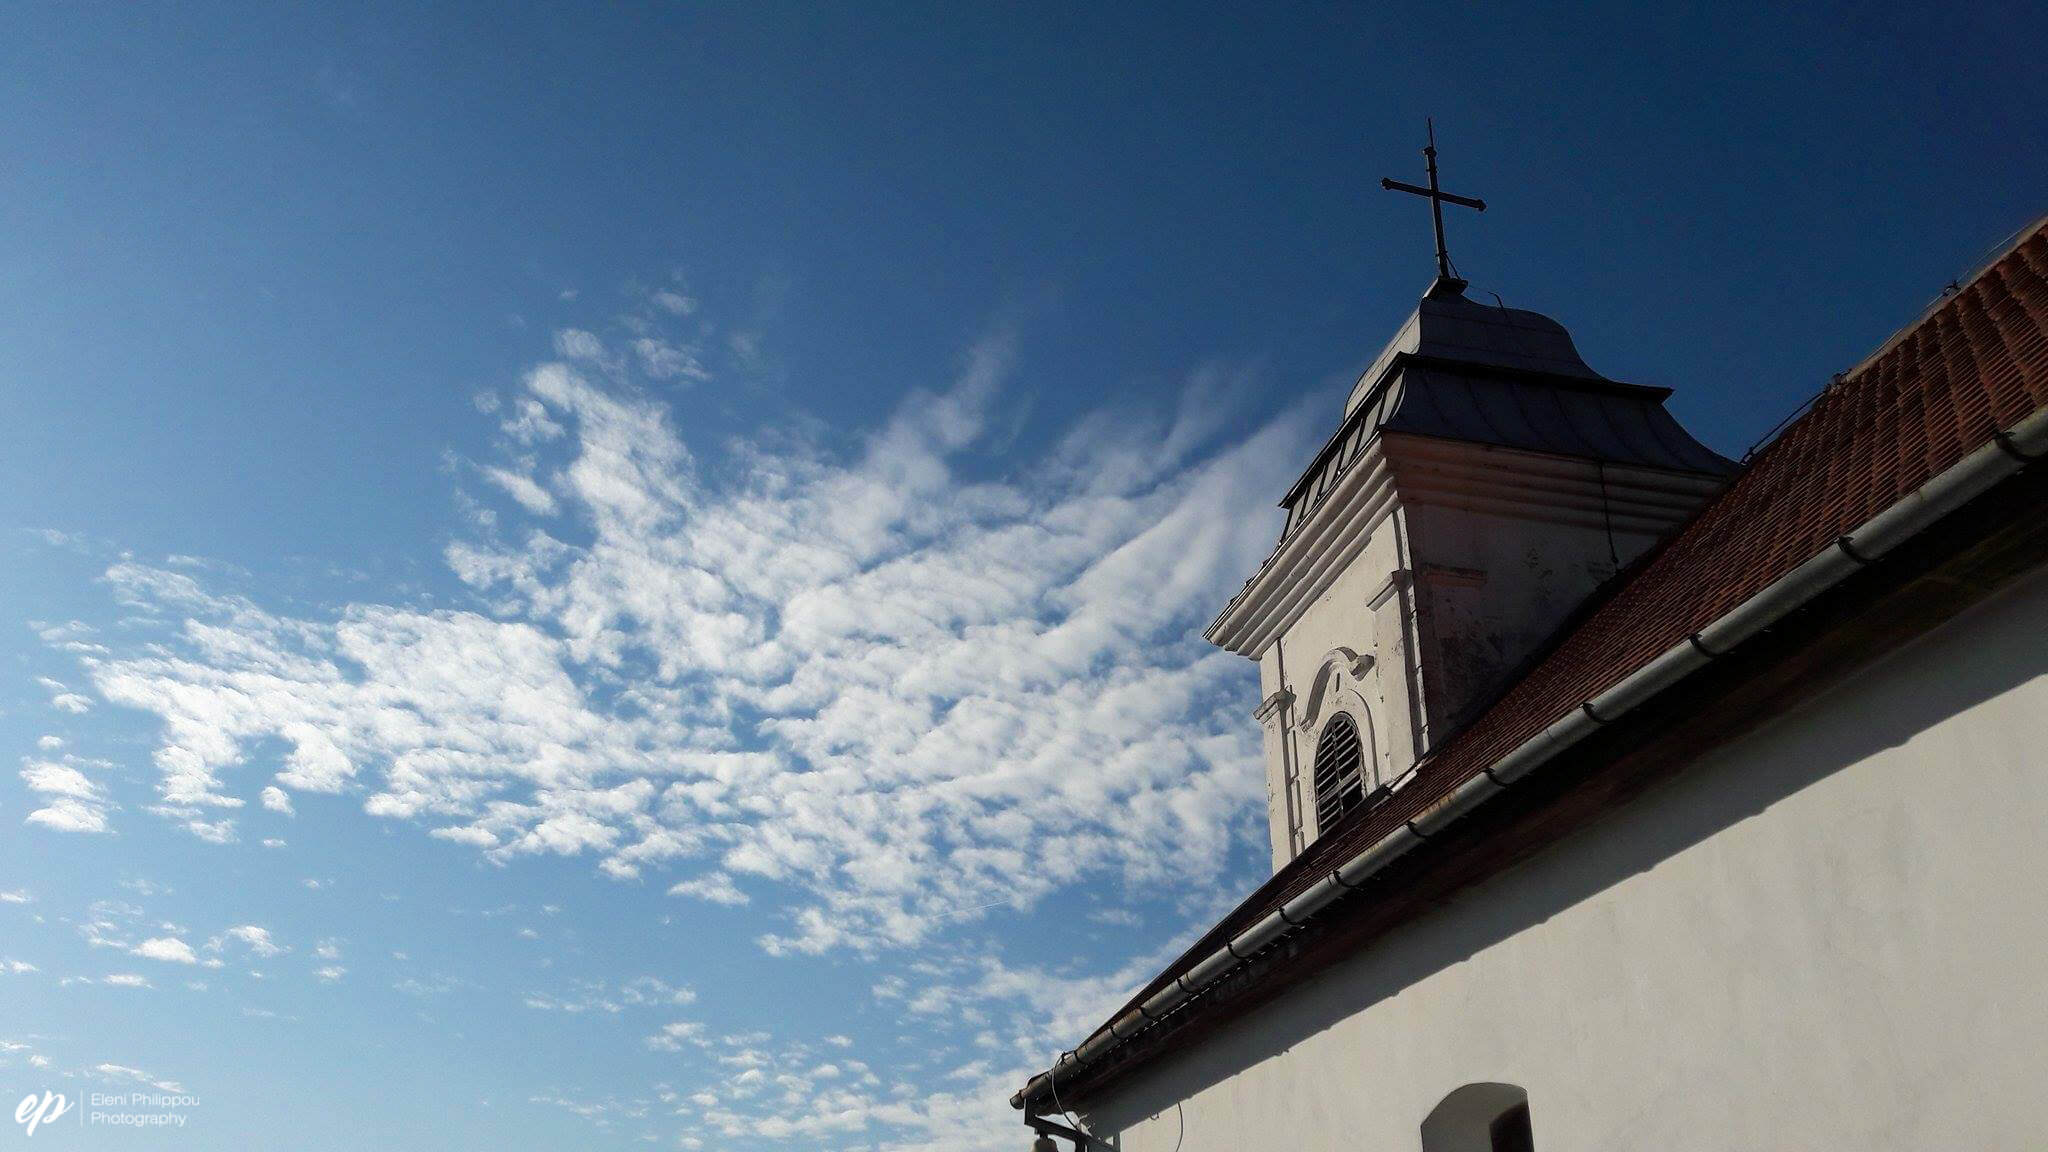 Orthodox Christianity is the main religion of Serbia. Photo taken en route to the tower